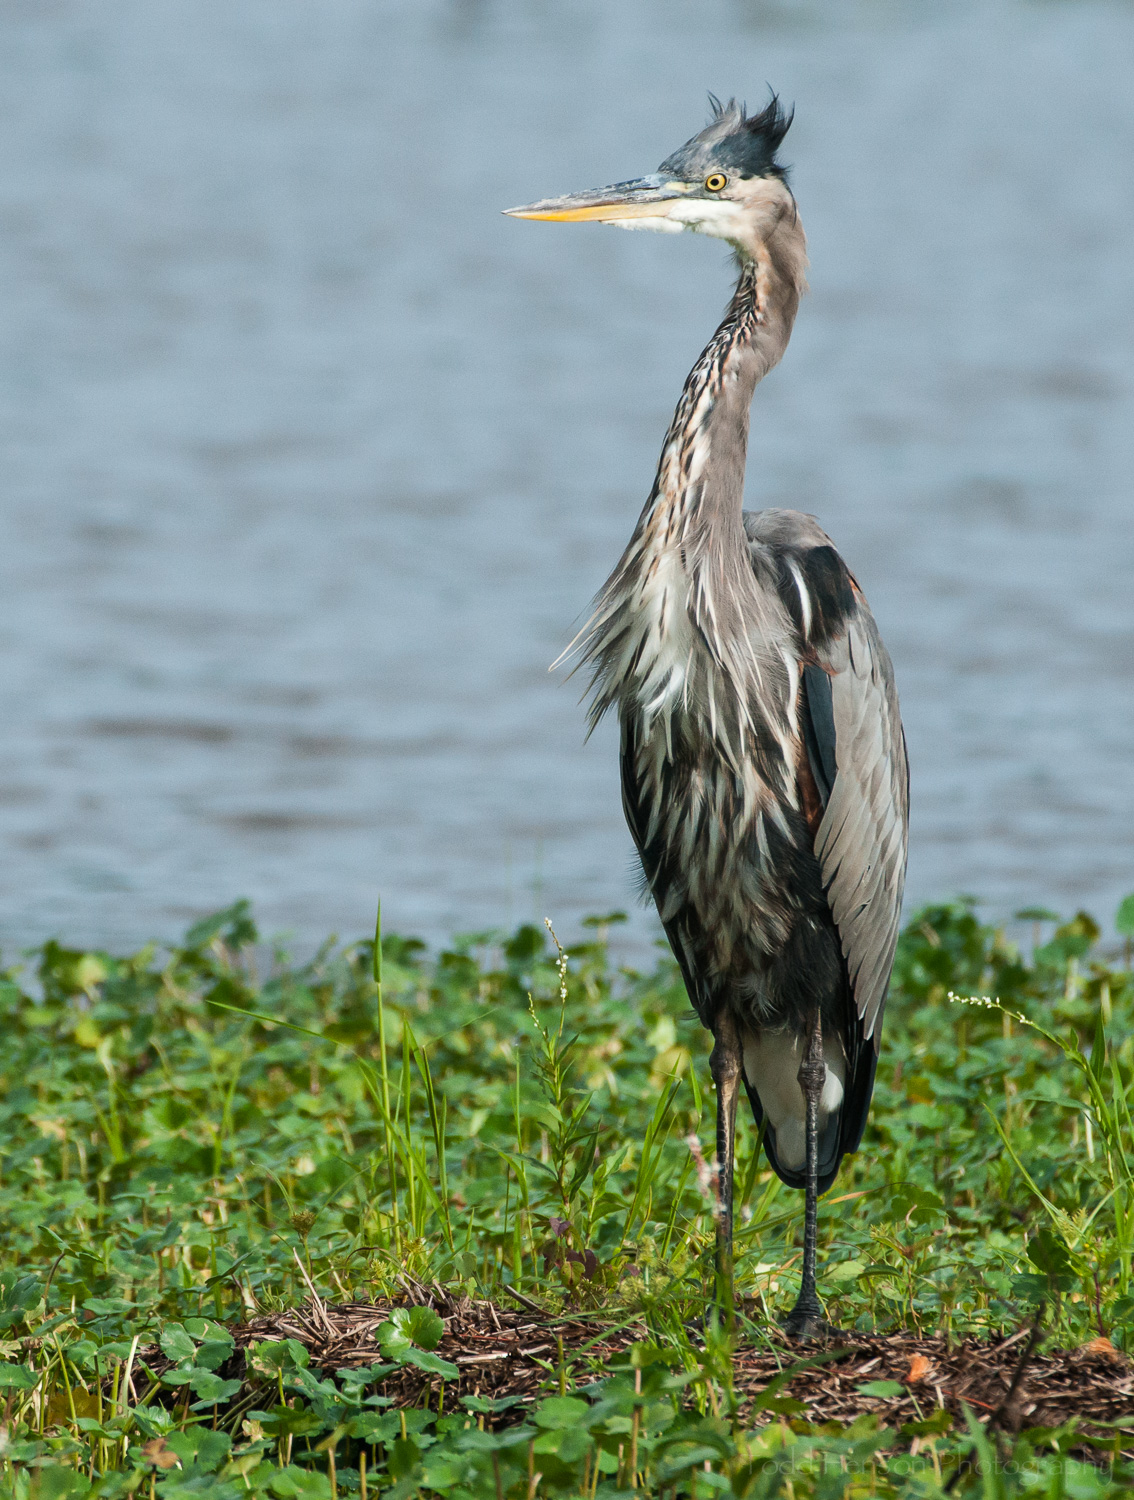 Great Blue Heron raising its head in the wind